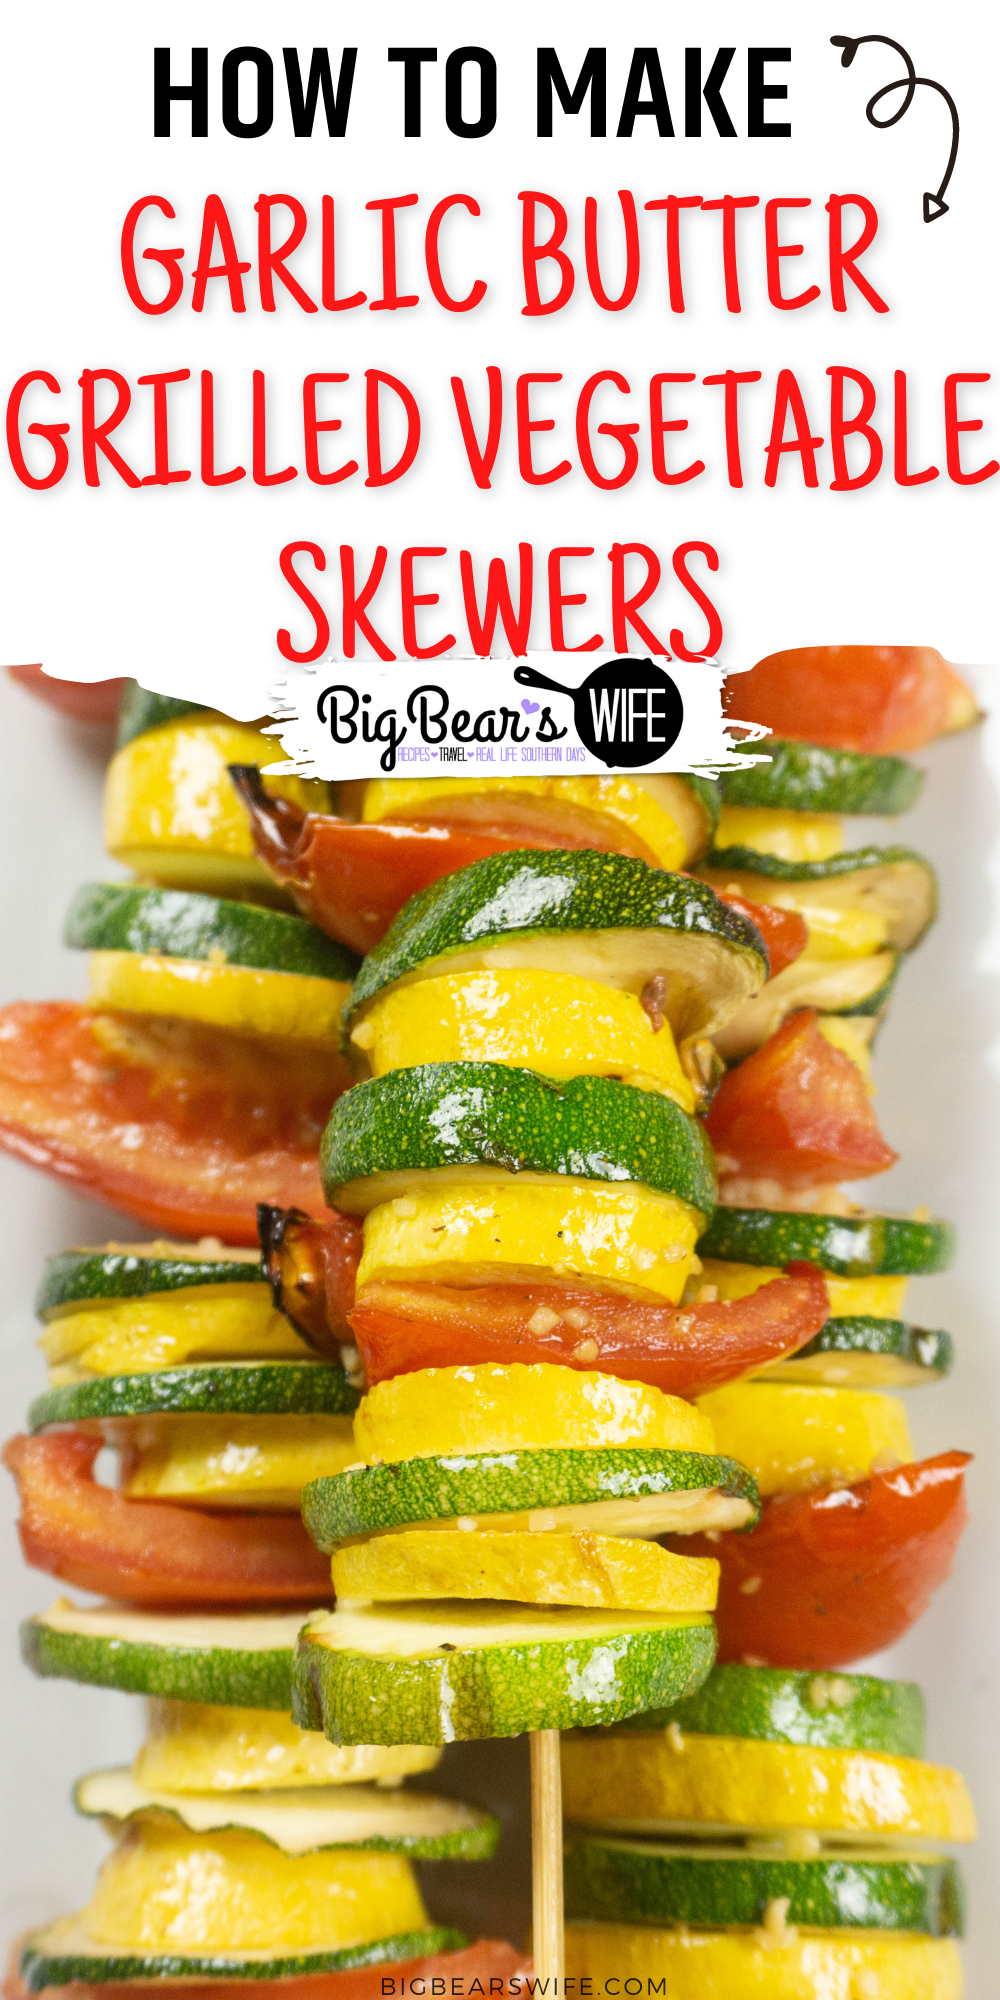 These simple Garlic Butter Grilled Vegetable Skewers are perfect for using up summer vegetables from the garden and for serving with chicken, steak, pork or seafood! via @bigbearswife